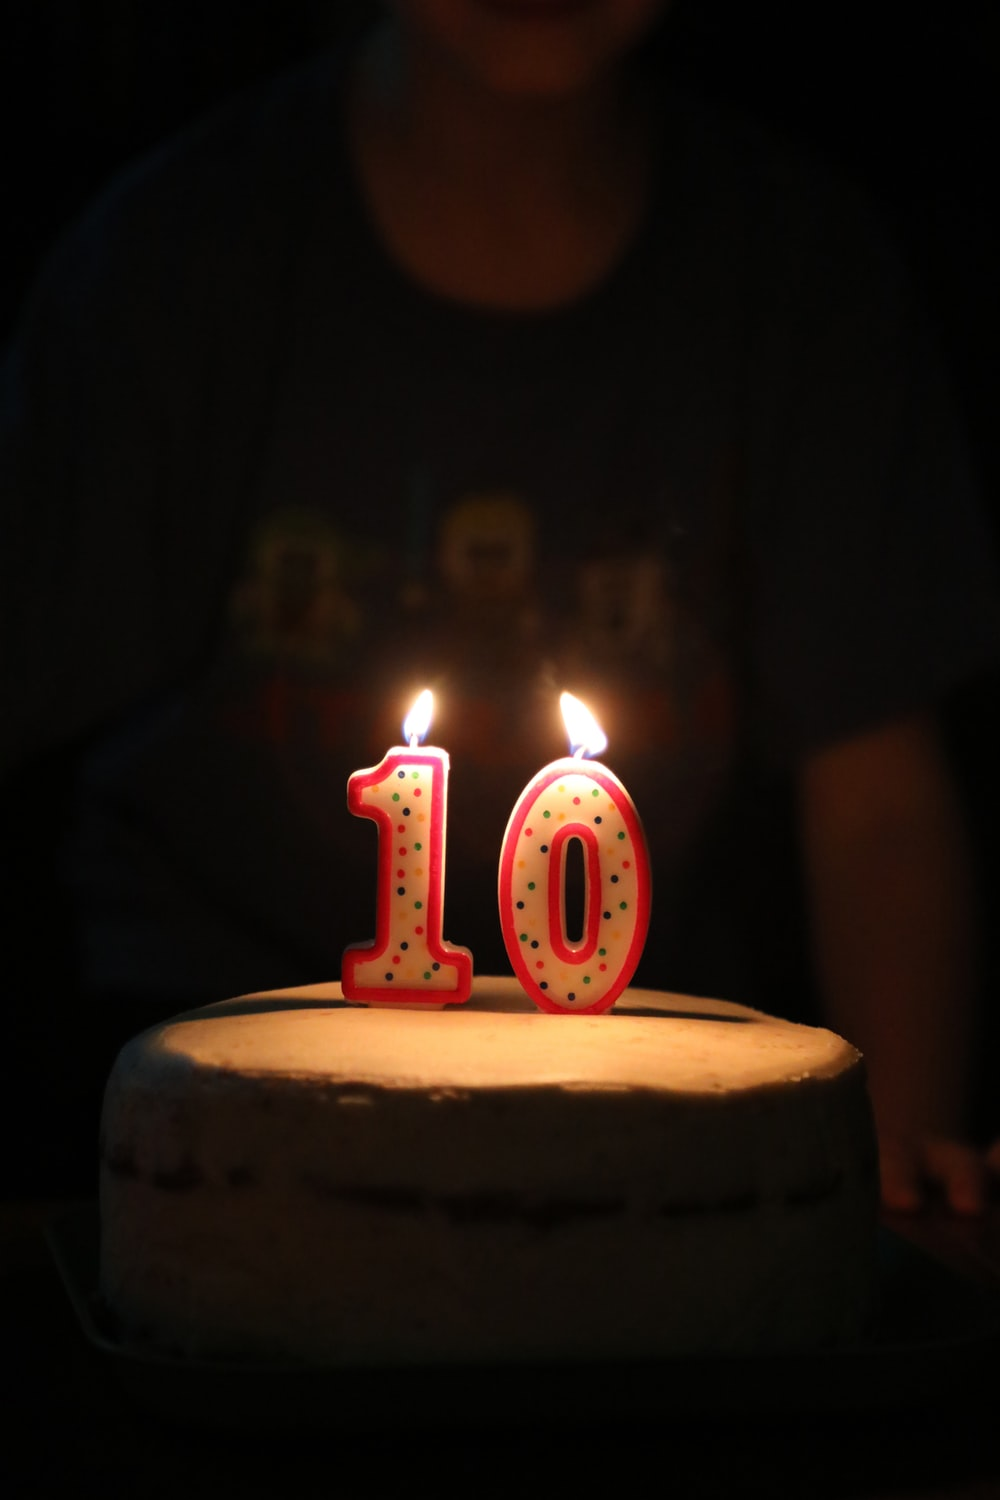 person standing beside cake with 10 candles